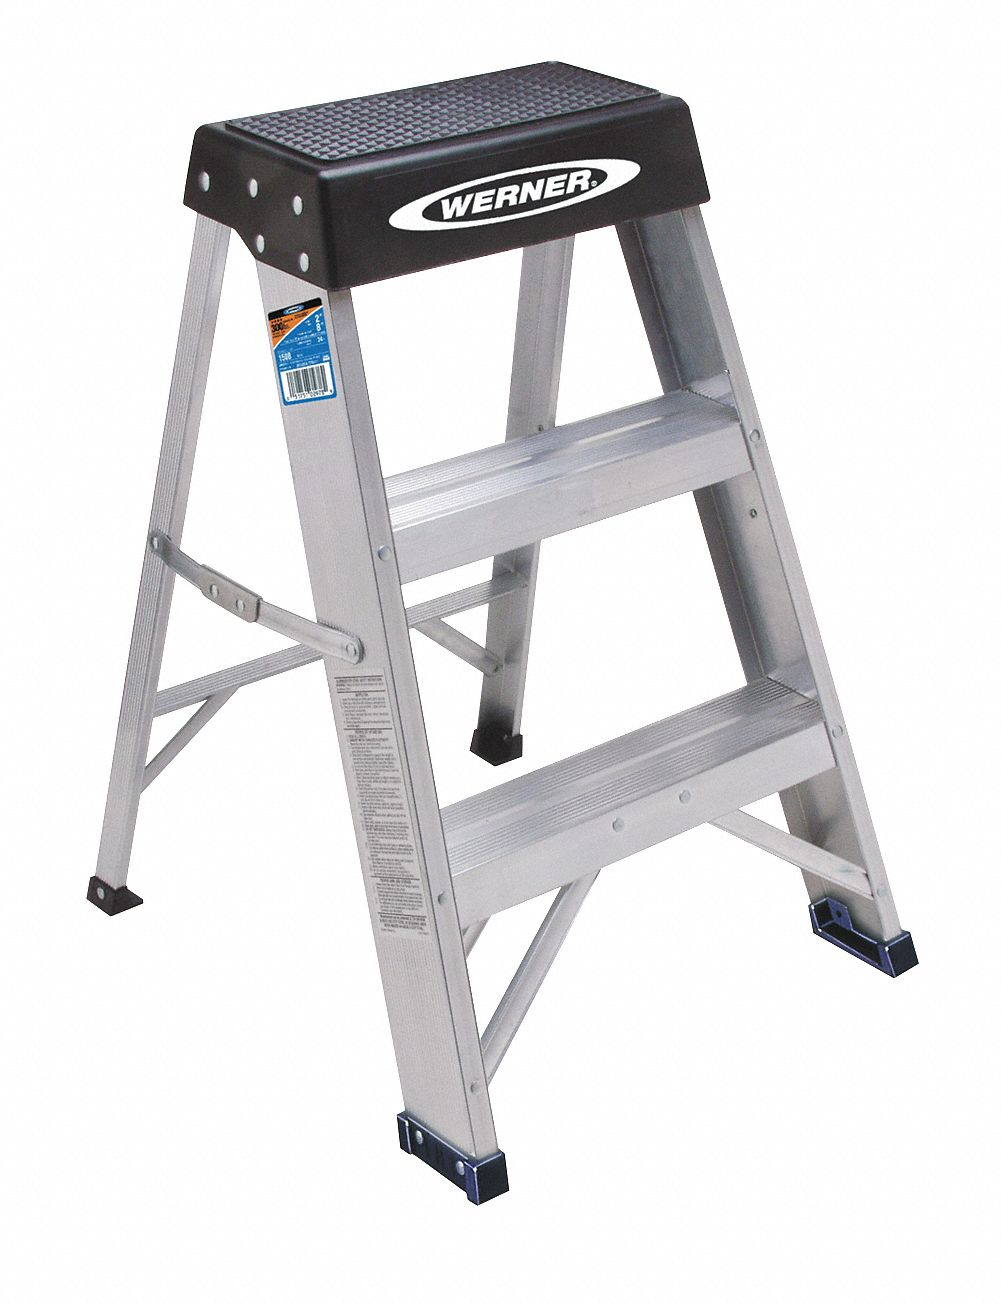 Aluminum Step Stand, 24 in Overall Height, 300 lb Load Capacity, Number of Steps: 2